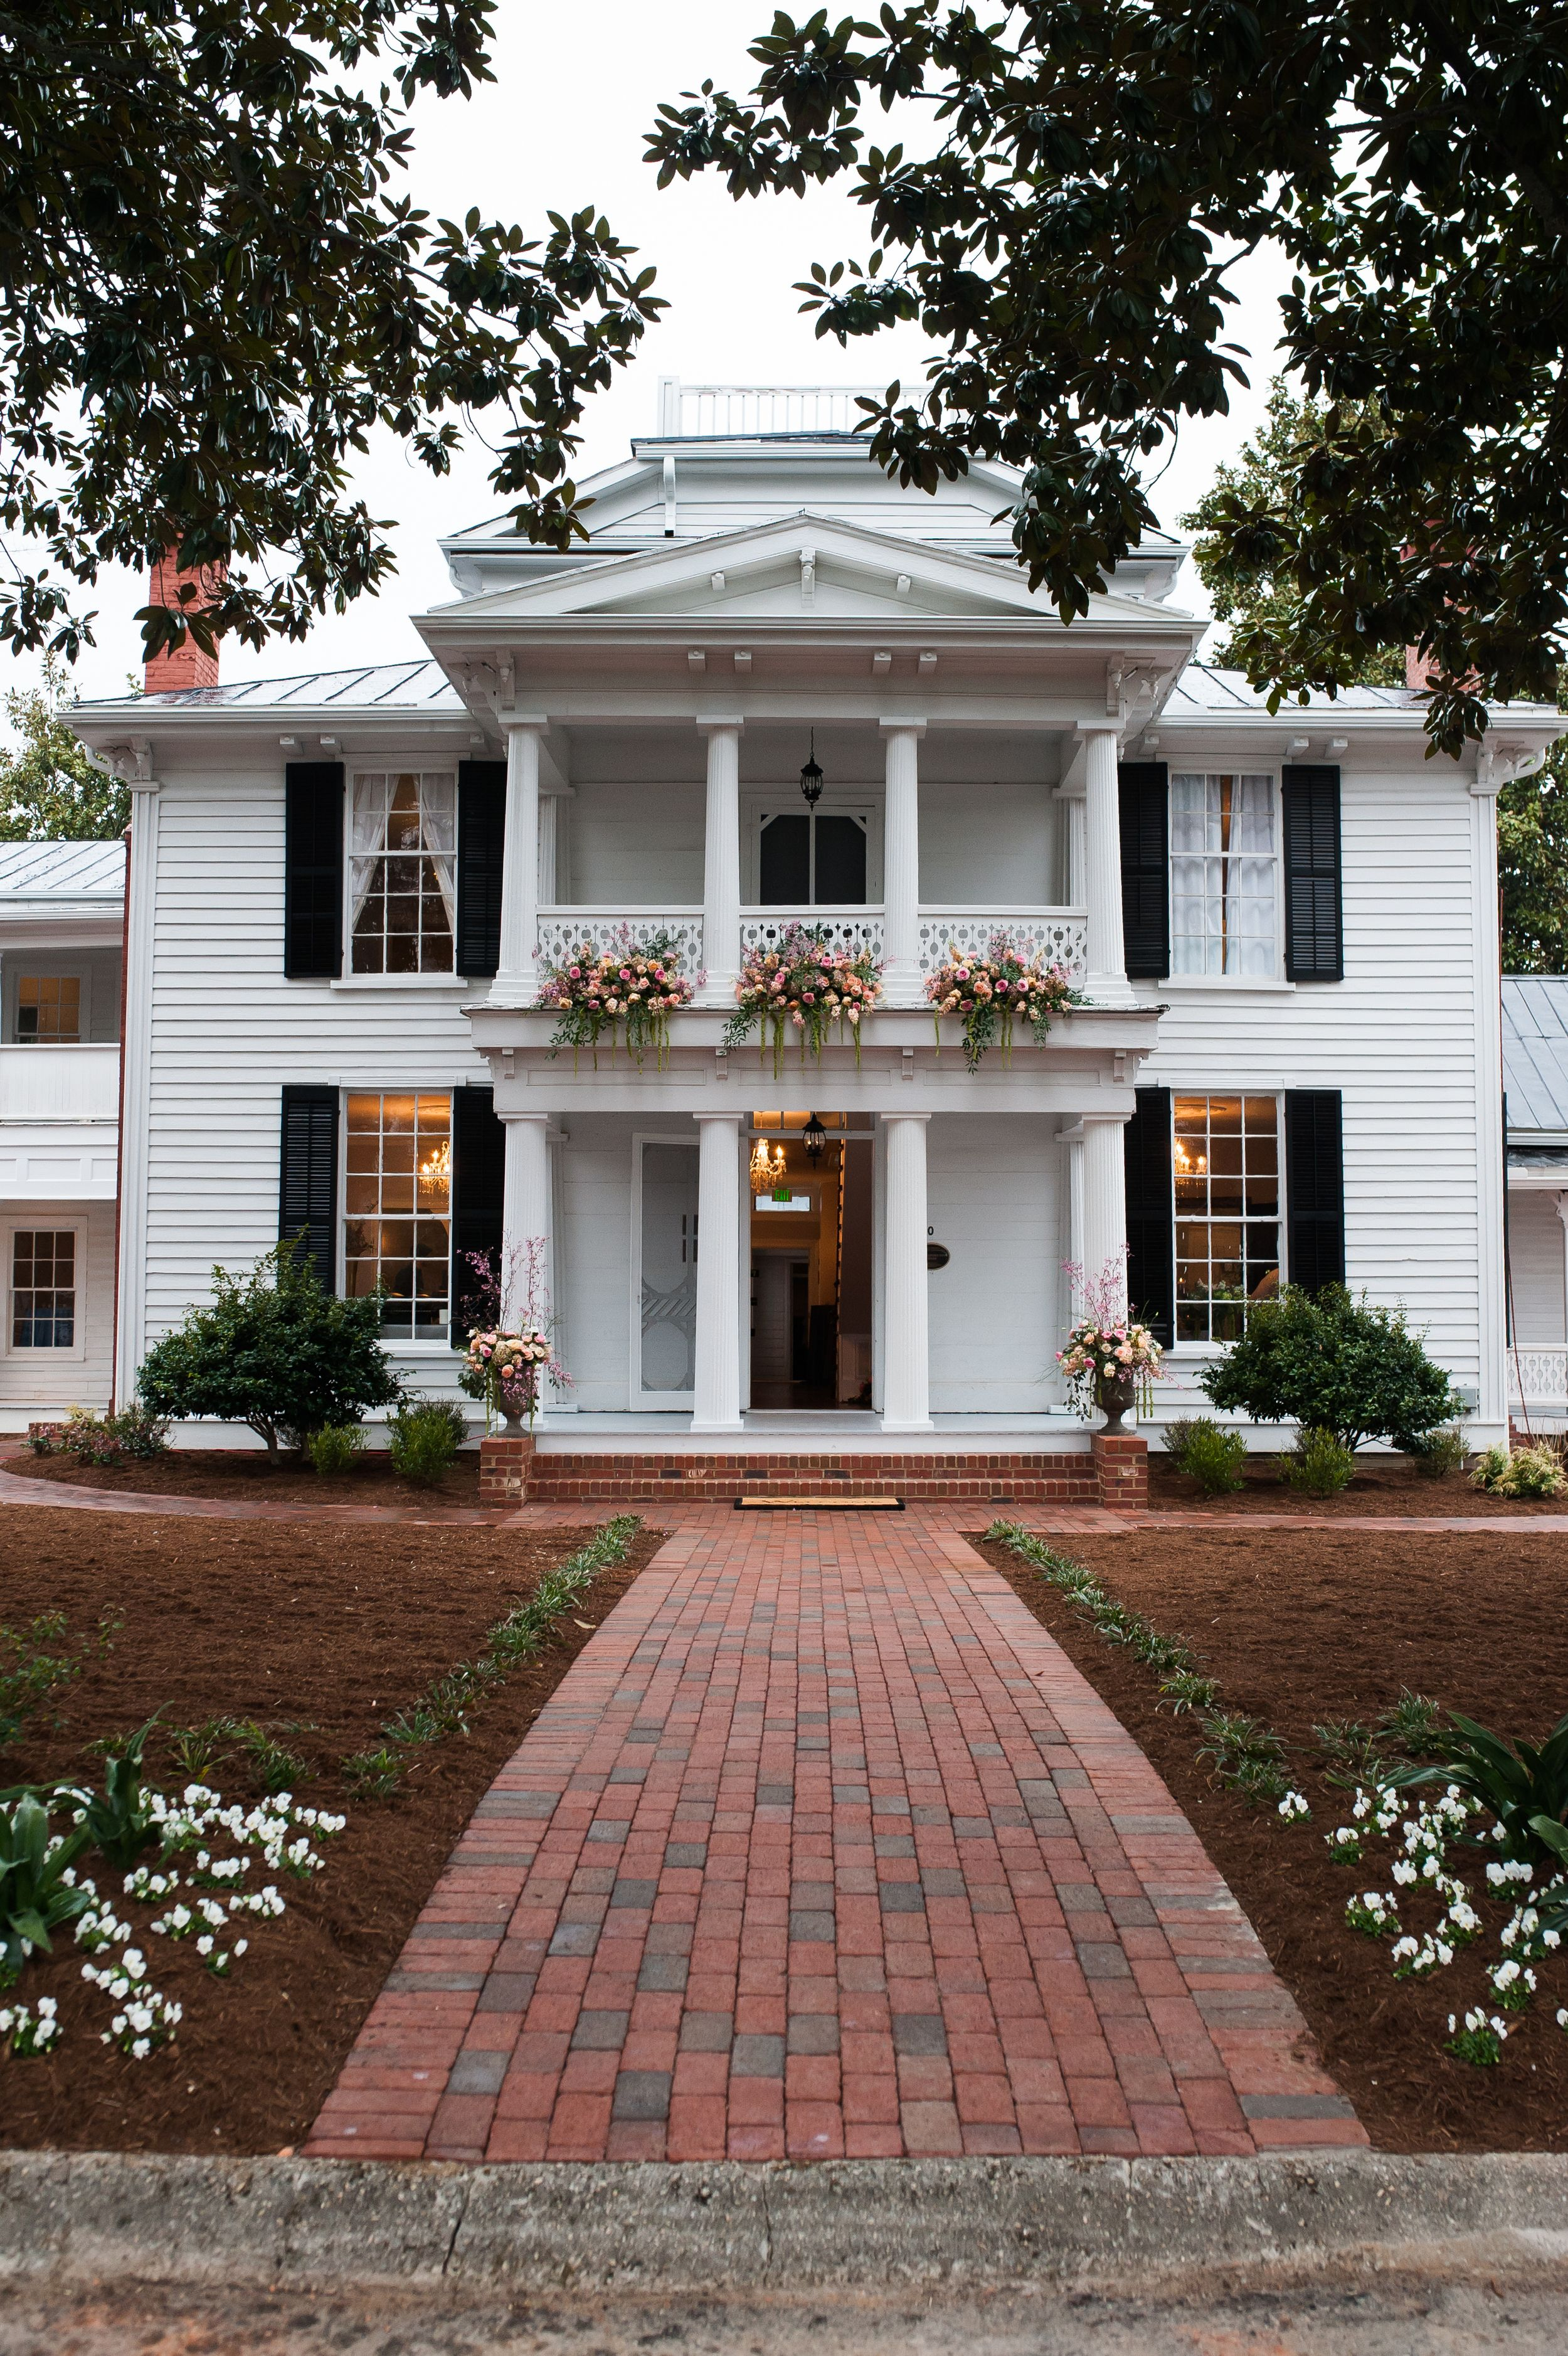 Beautiful White Two-story Colonial House With Double